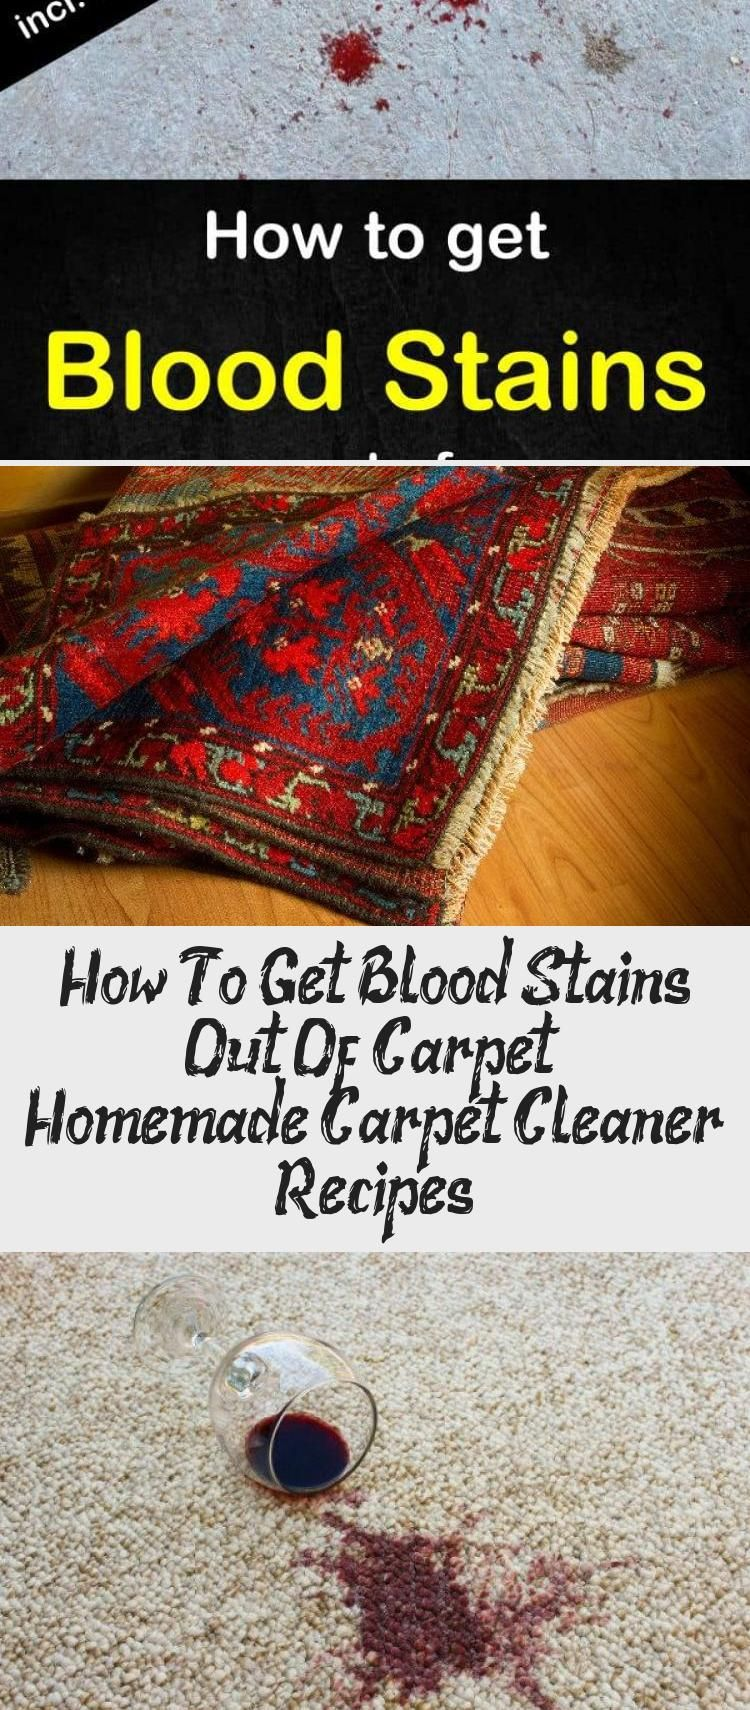 How To Get Blood Stains Out Of Carpet With Detailed Homemade